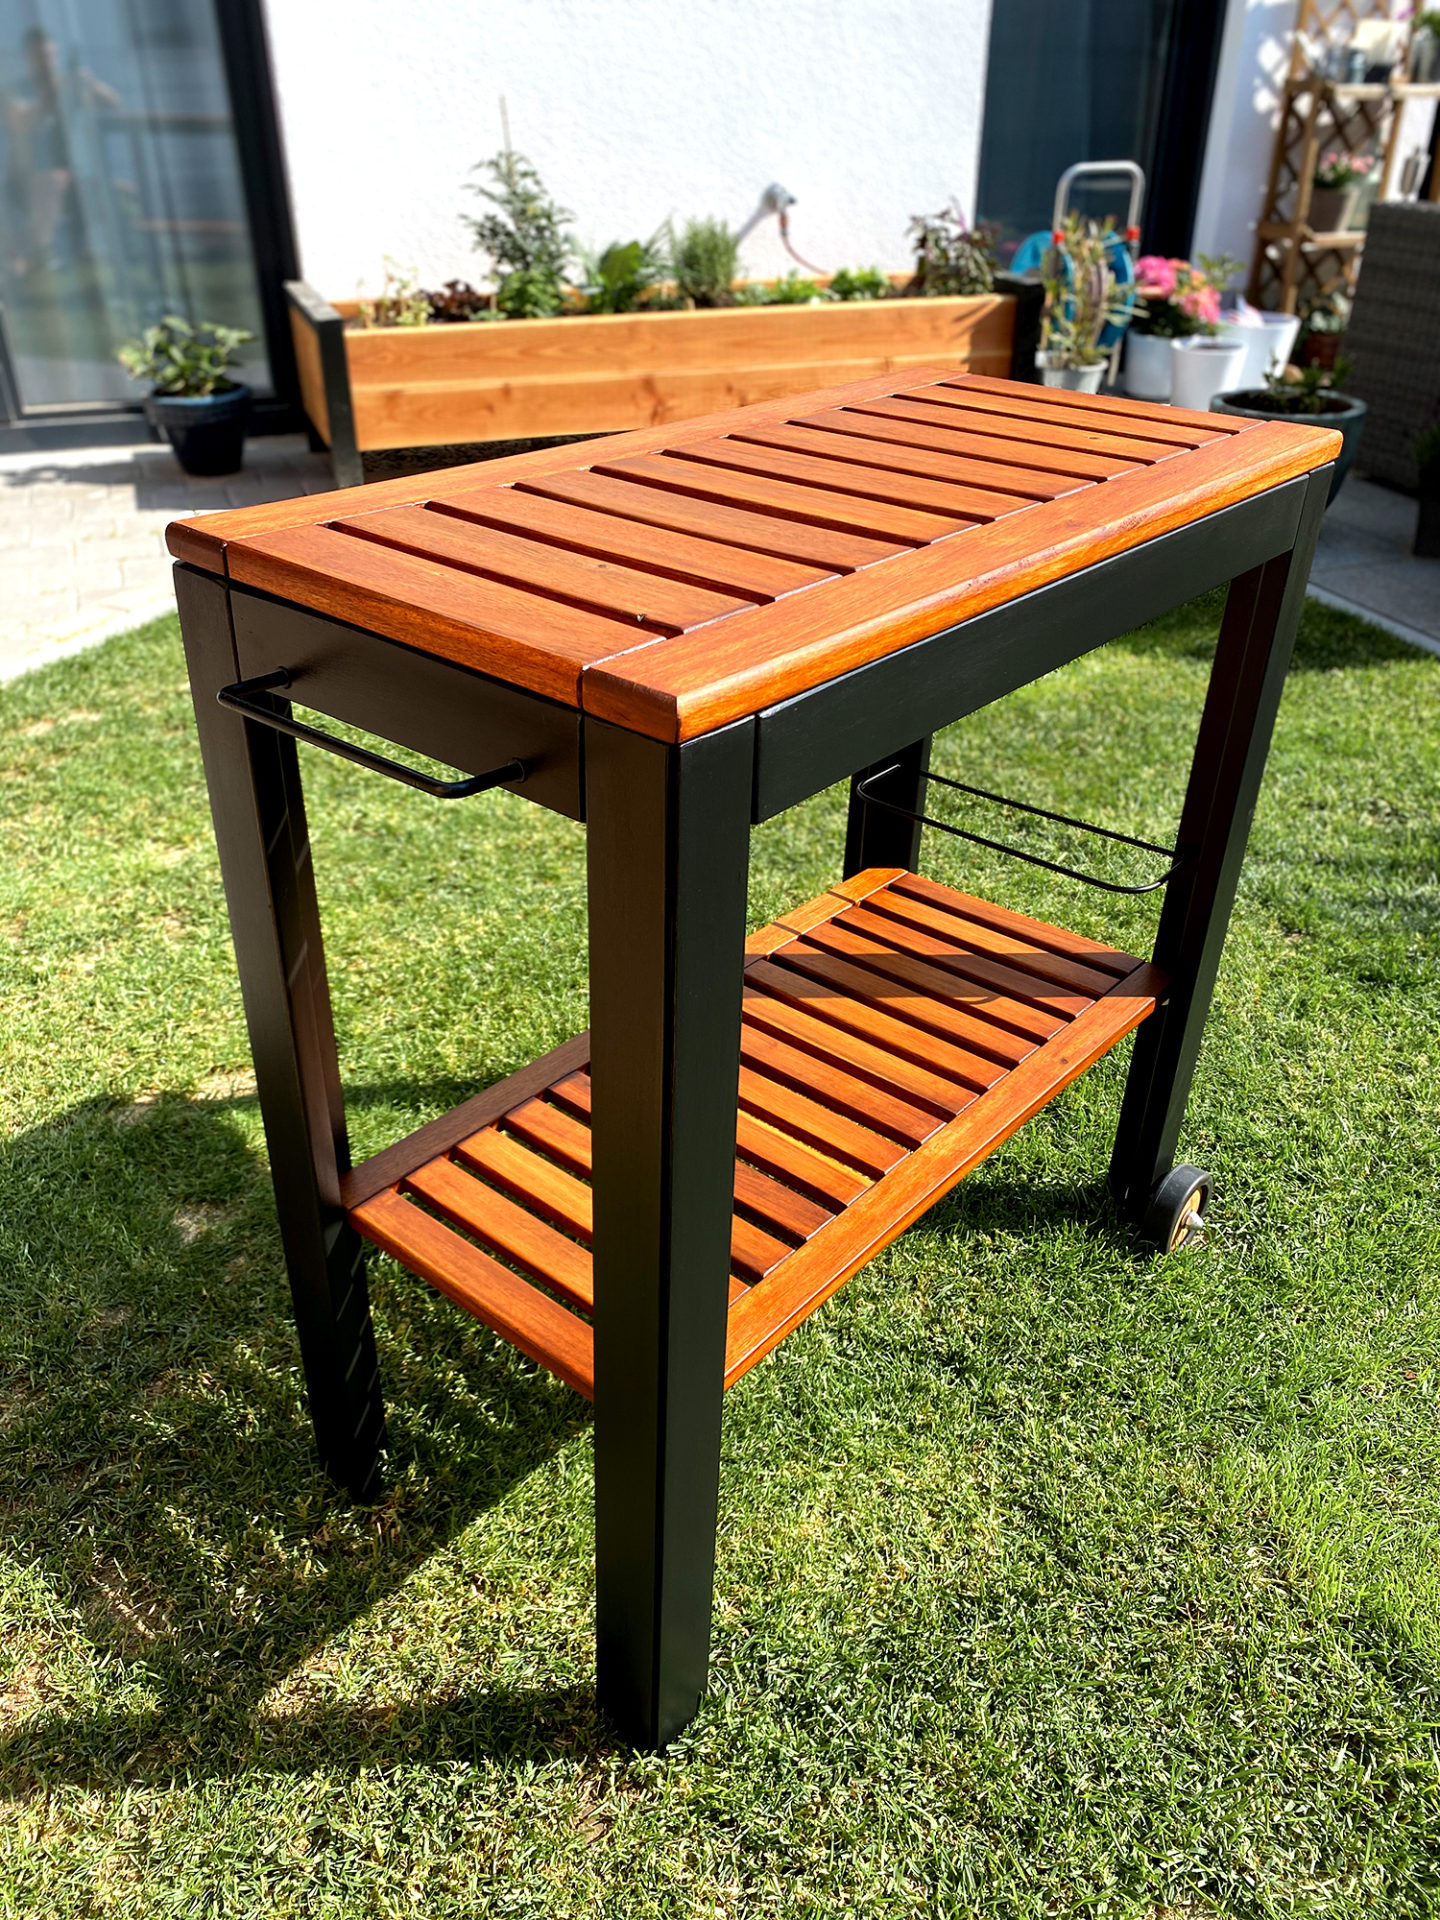 DIY Grilltisch Upcycling Remmers